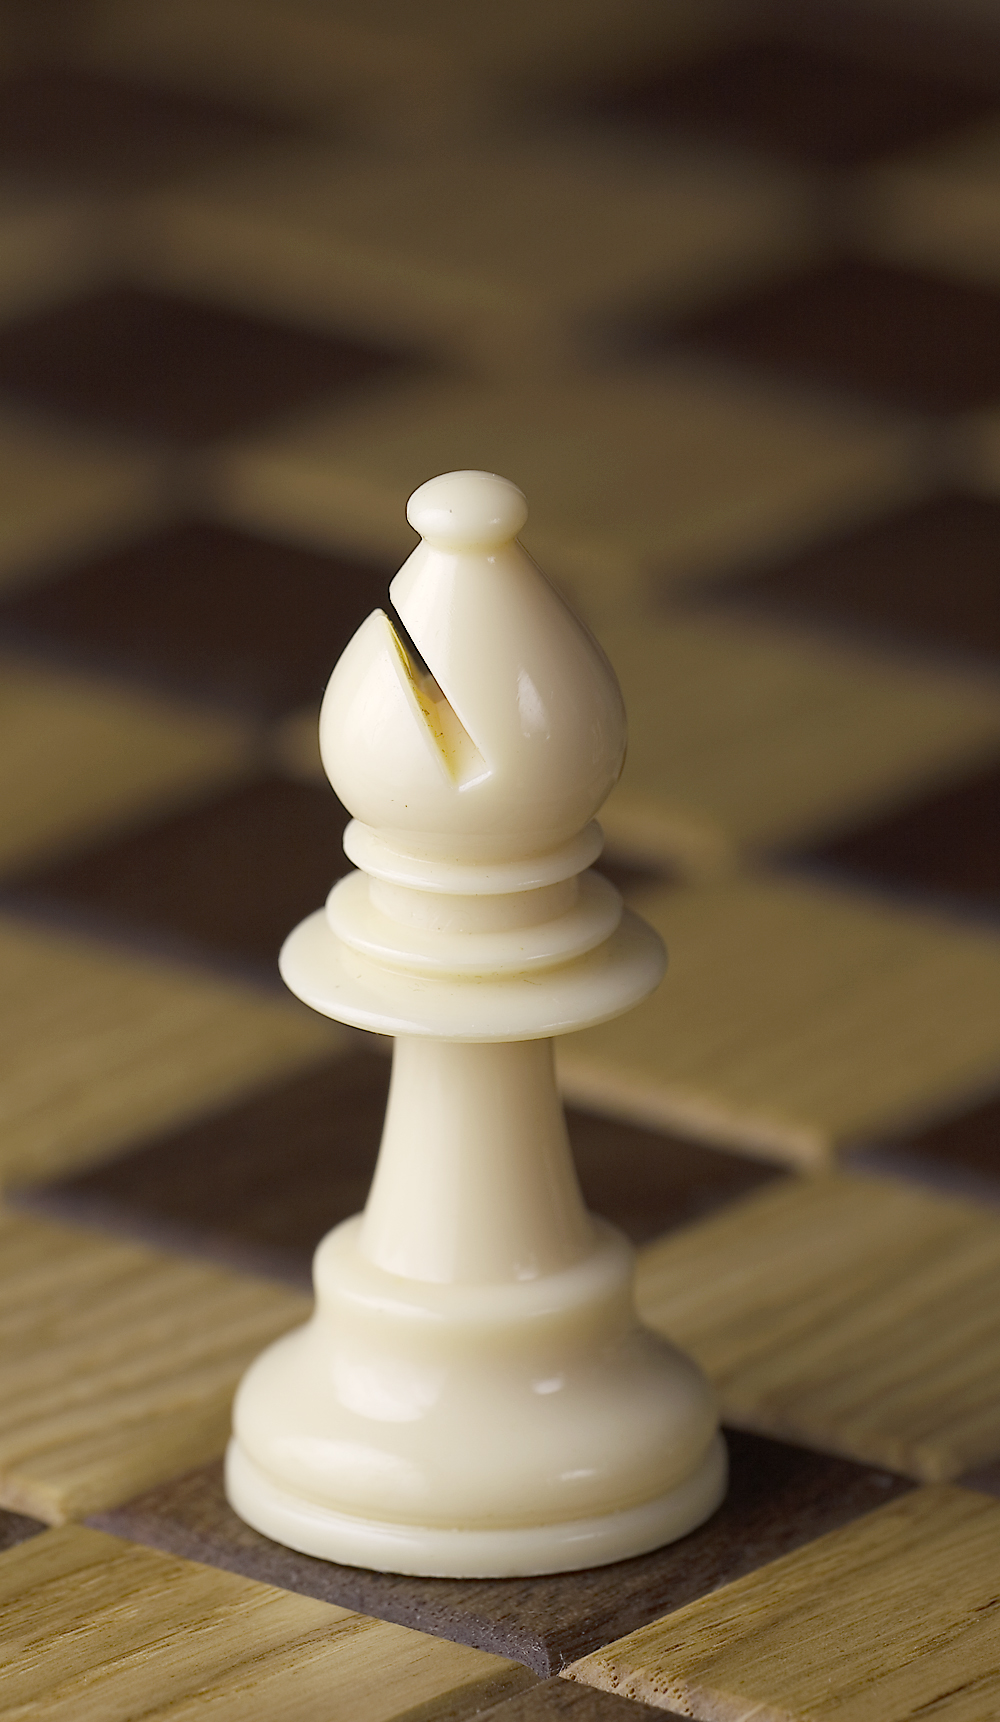 Bishop Chess Wikipedia